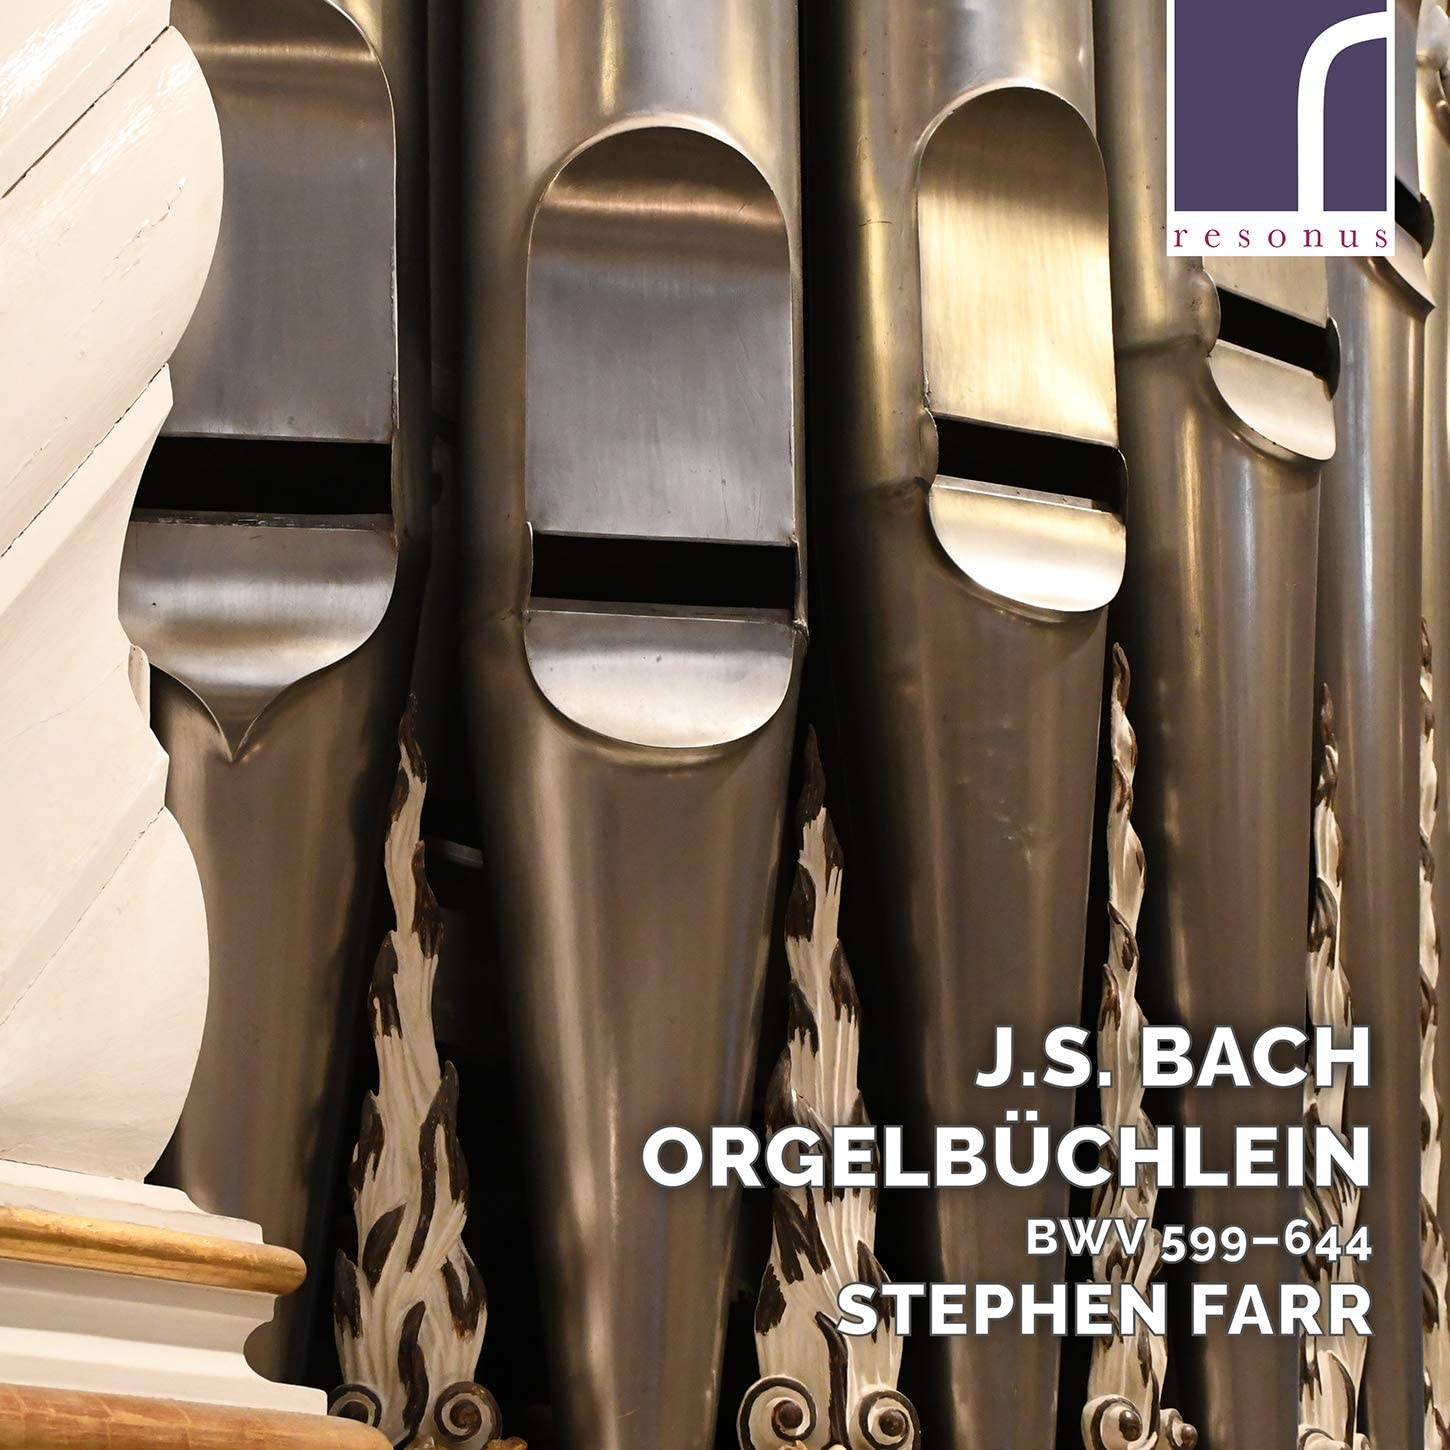 Review of JS BACH Orgelbüchlein, BWV 599-644 (Stephen Farr)